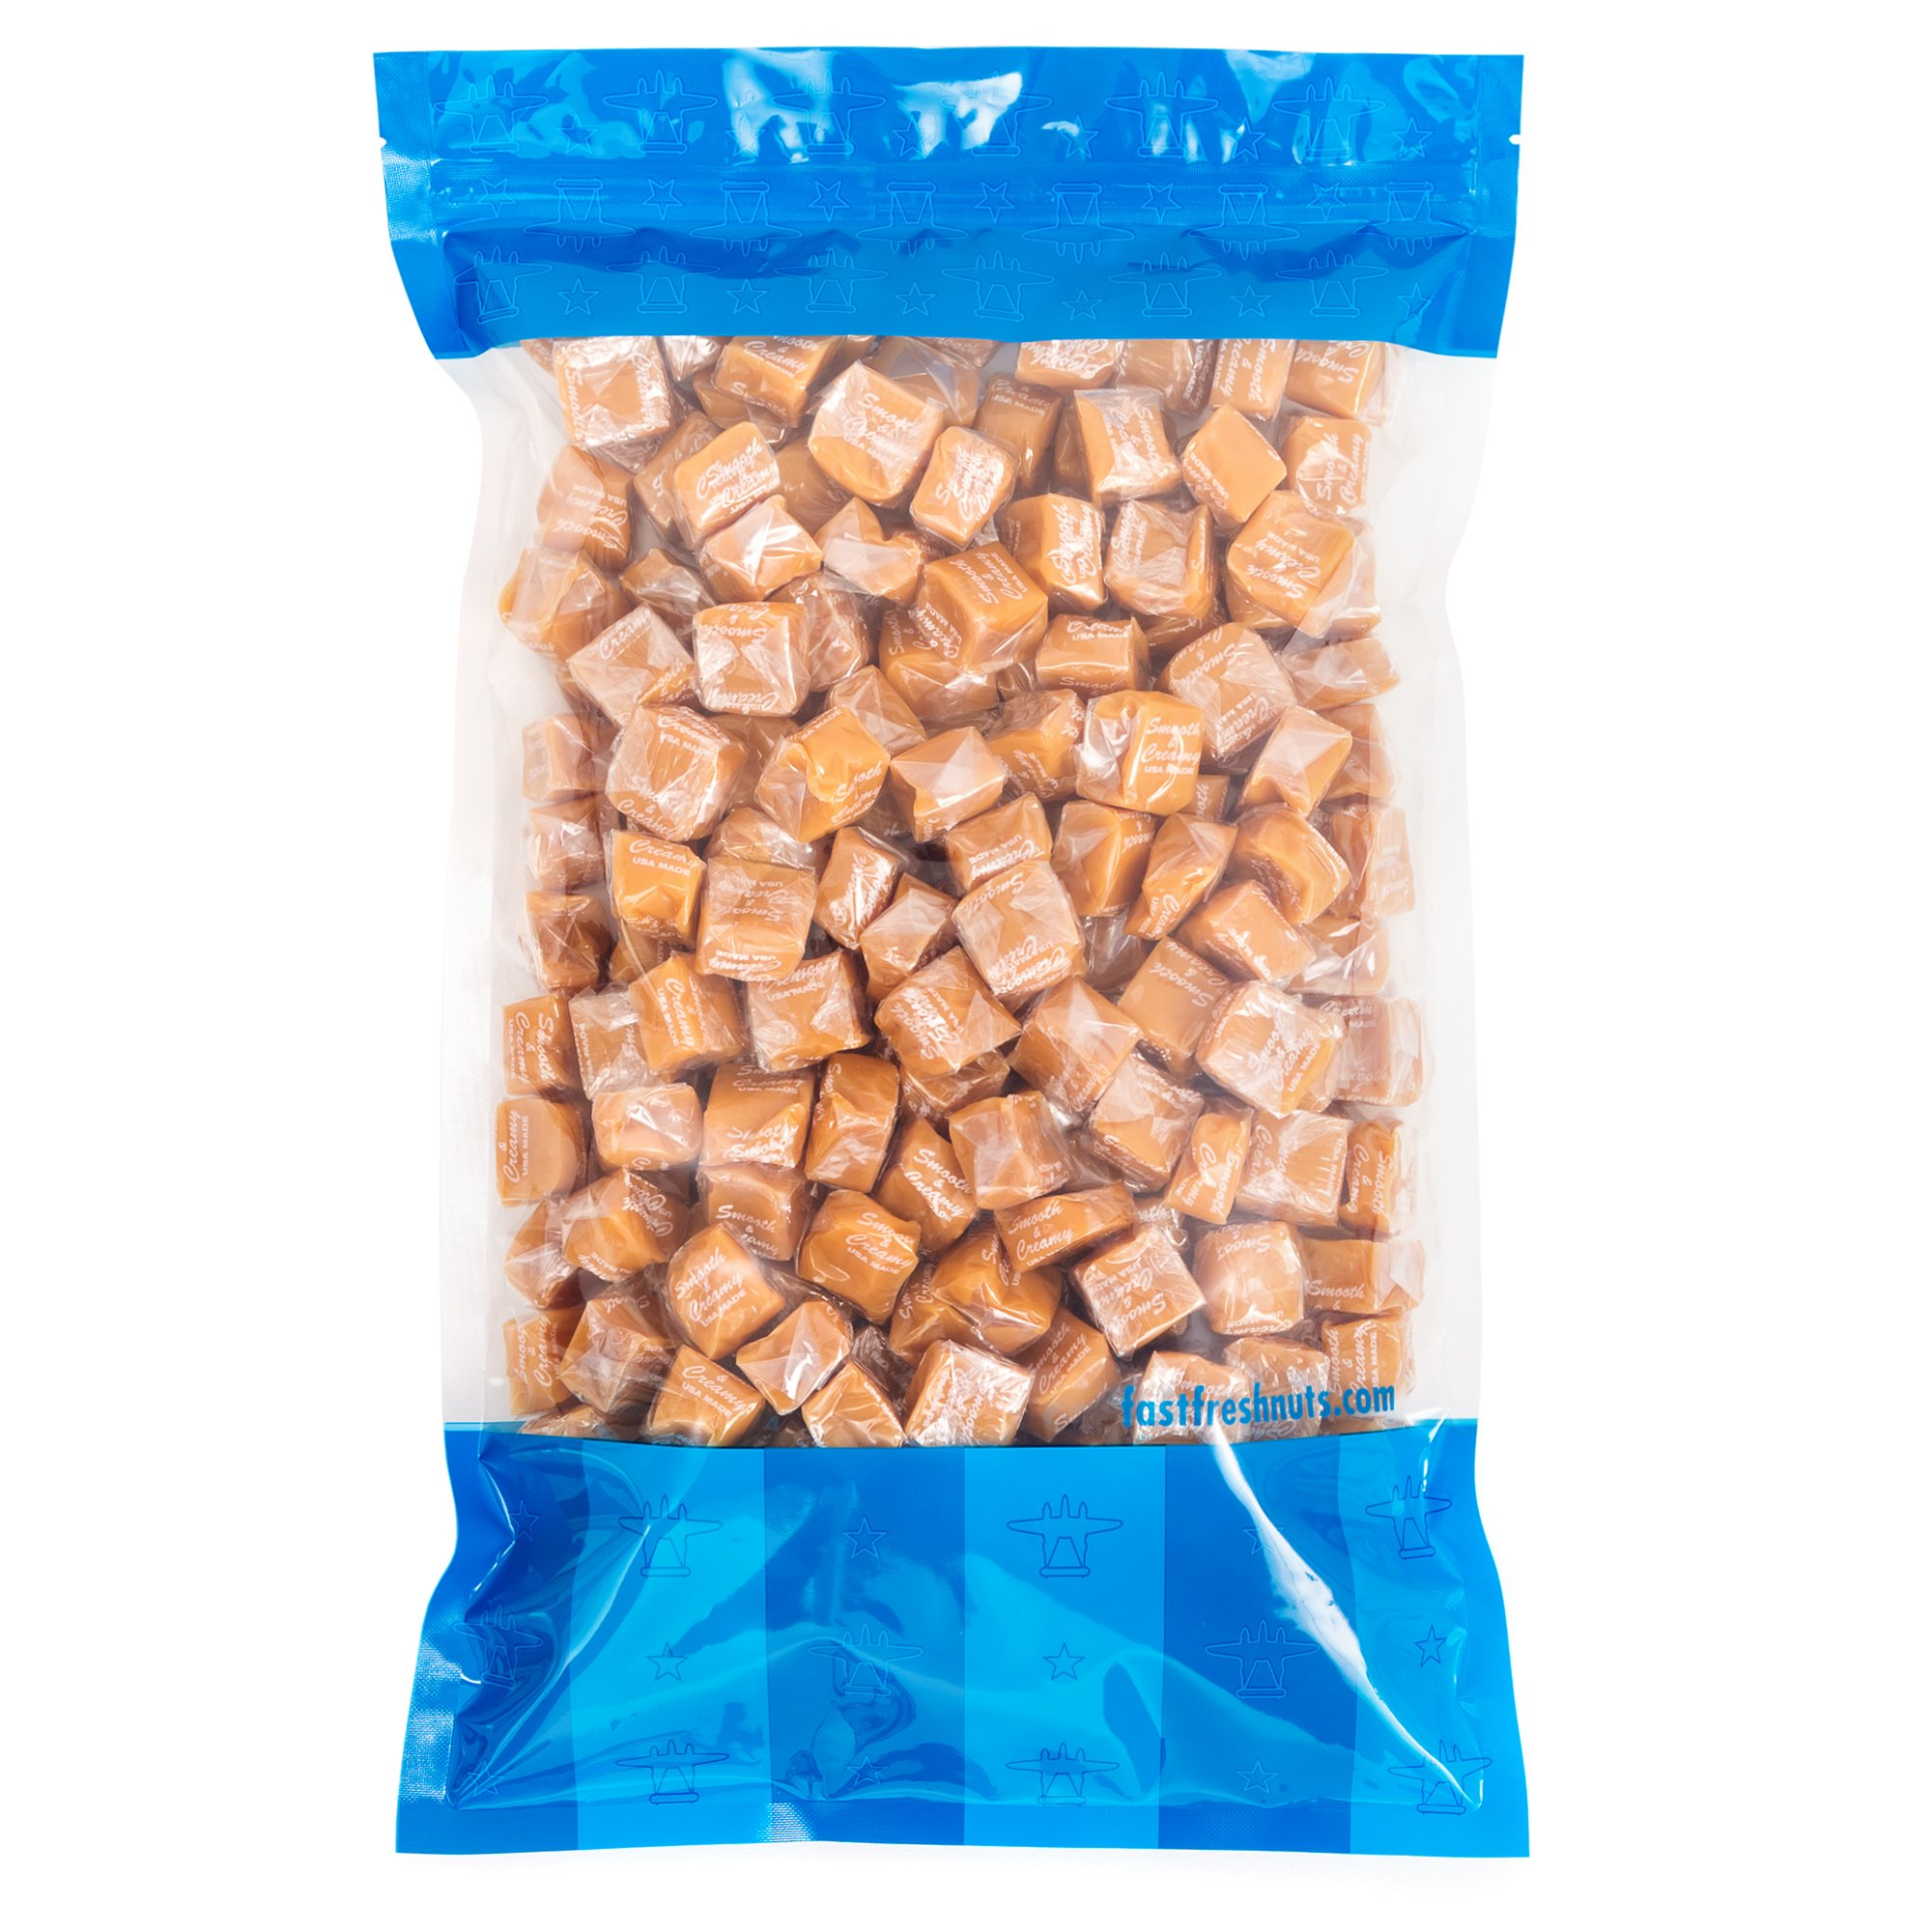 Bulk Smooth and Creamy Caramel Squares - 5 lbs in a Resealable Bomber Bag - Great for Office Candy Bowls - Baking - Wholesale - Parties - Holiday Candy !!